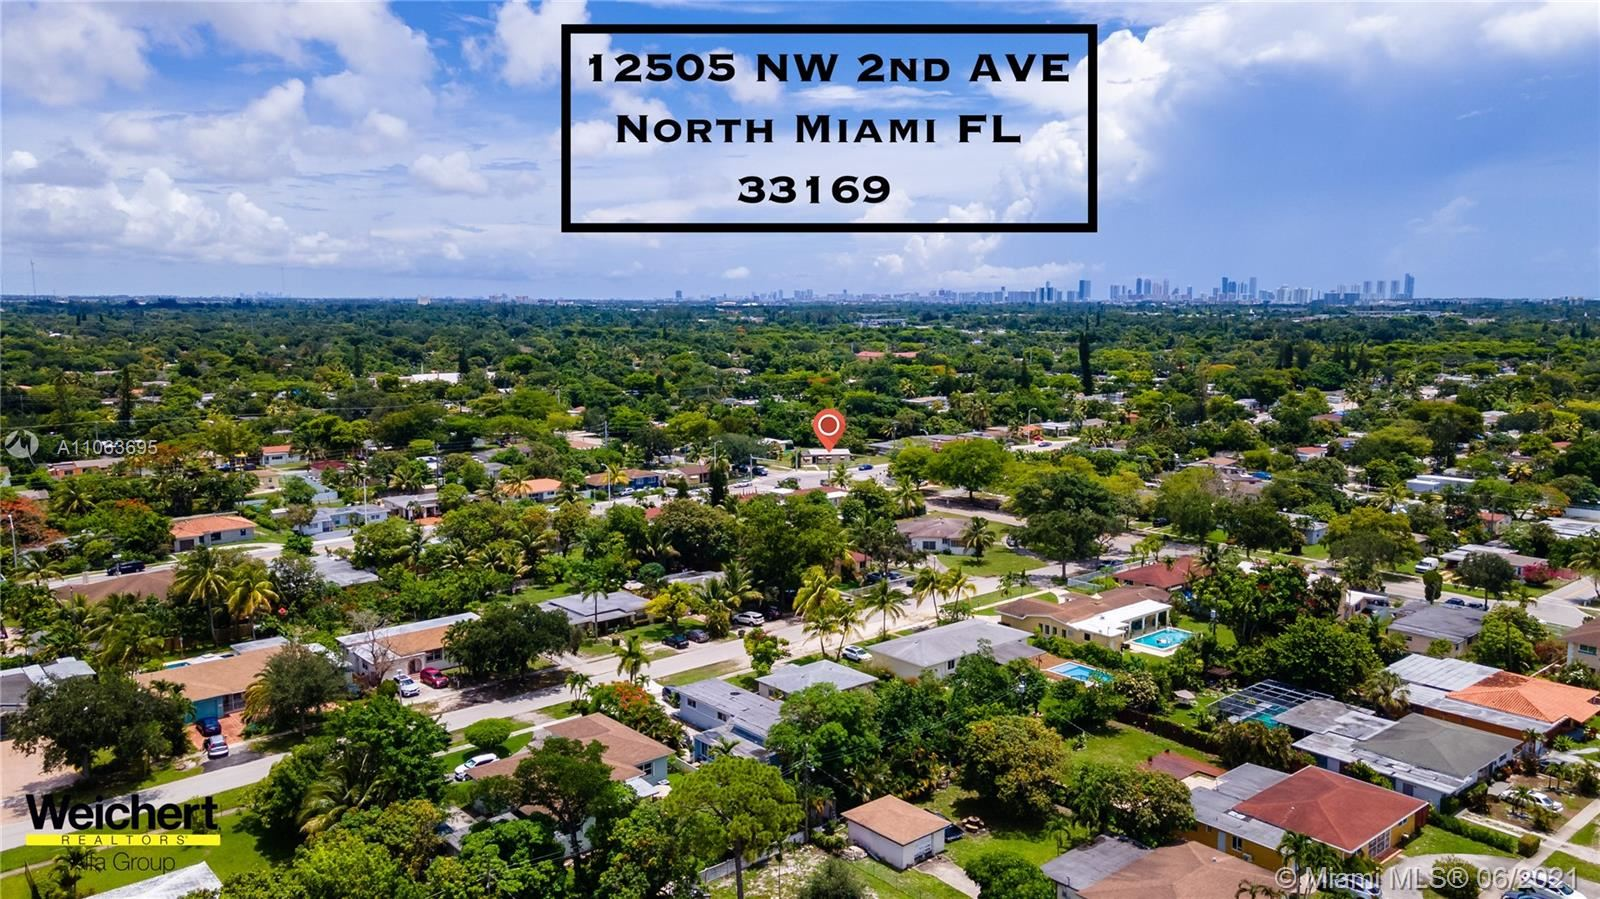 12505 NW 2nd Ave, North Miami, FL 33168 - #: A11063695